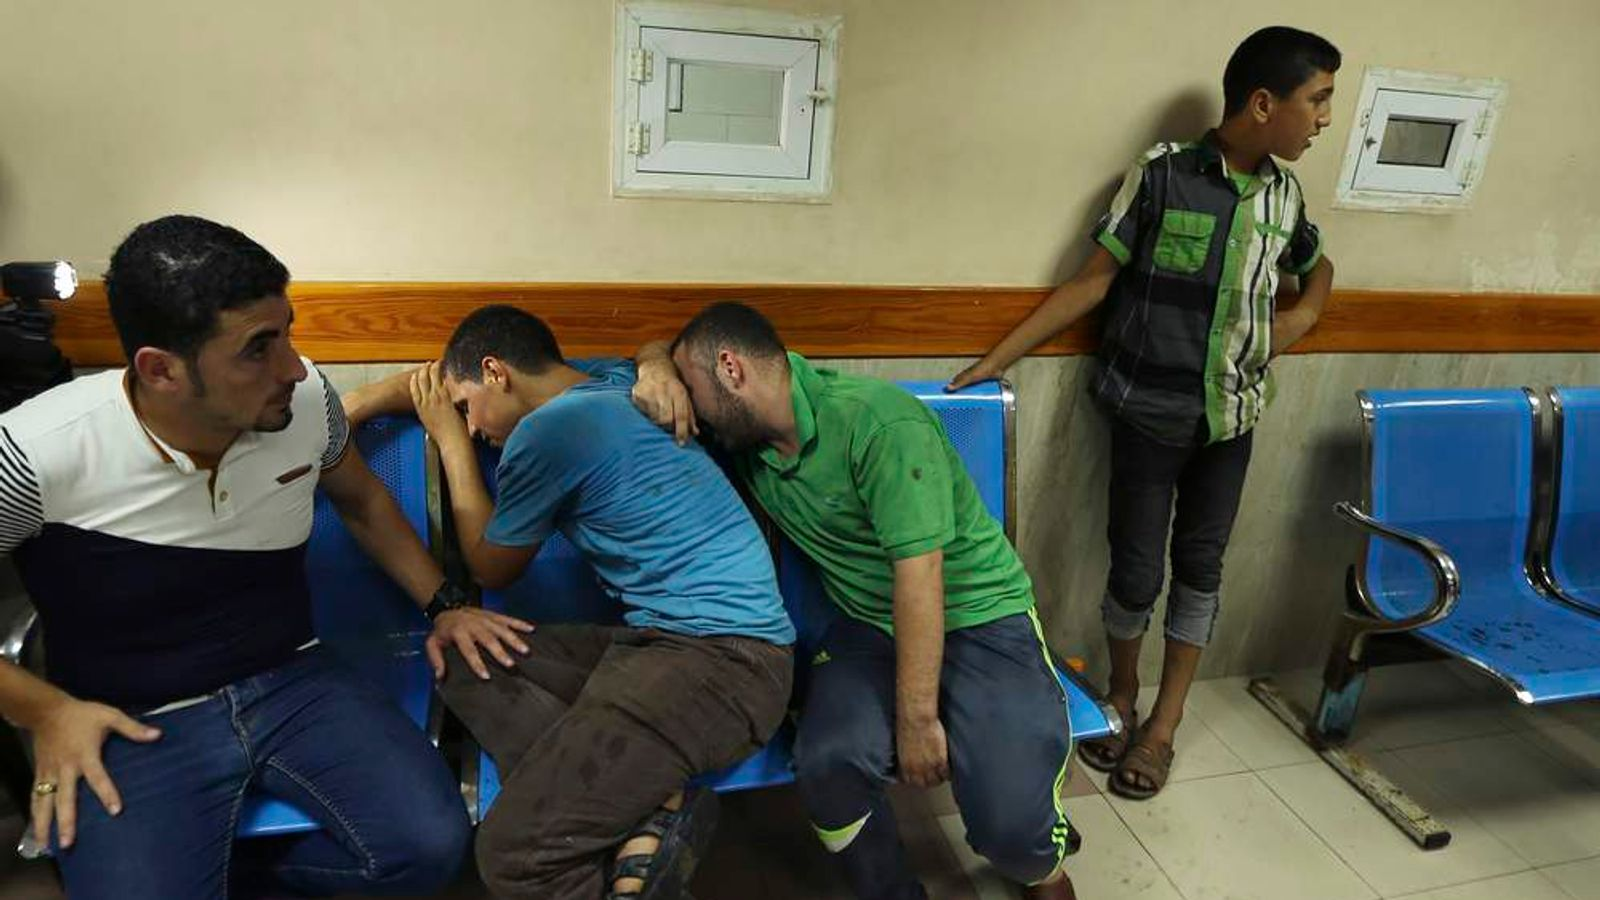 Palestinians react after their relatives were killed in what hospital officials said was an Israeli air strike in Gaza City